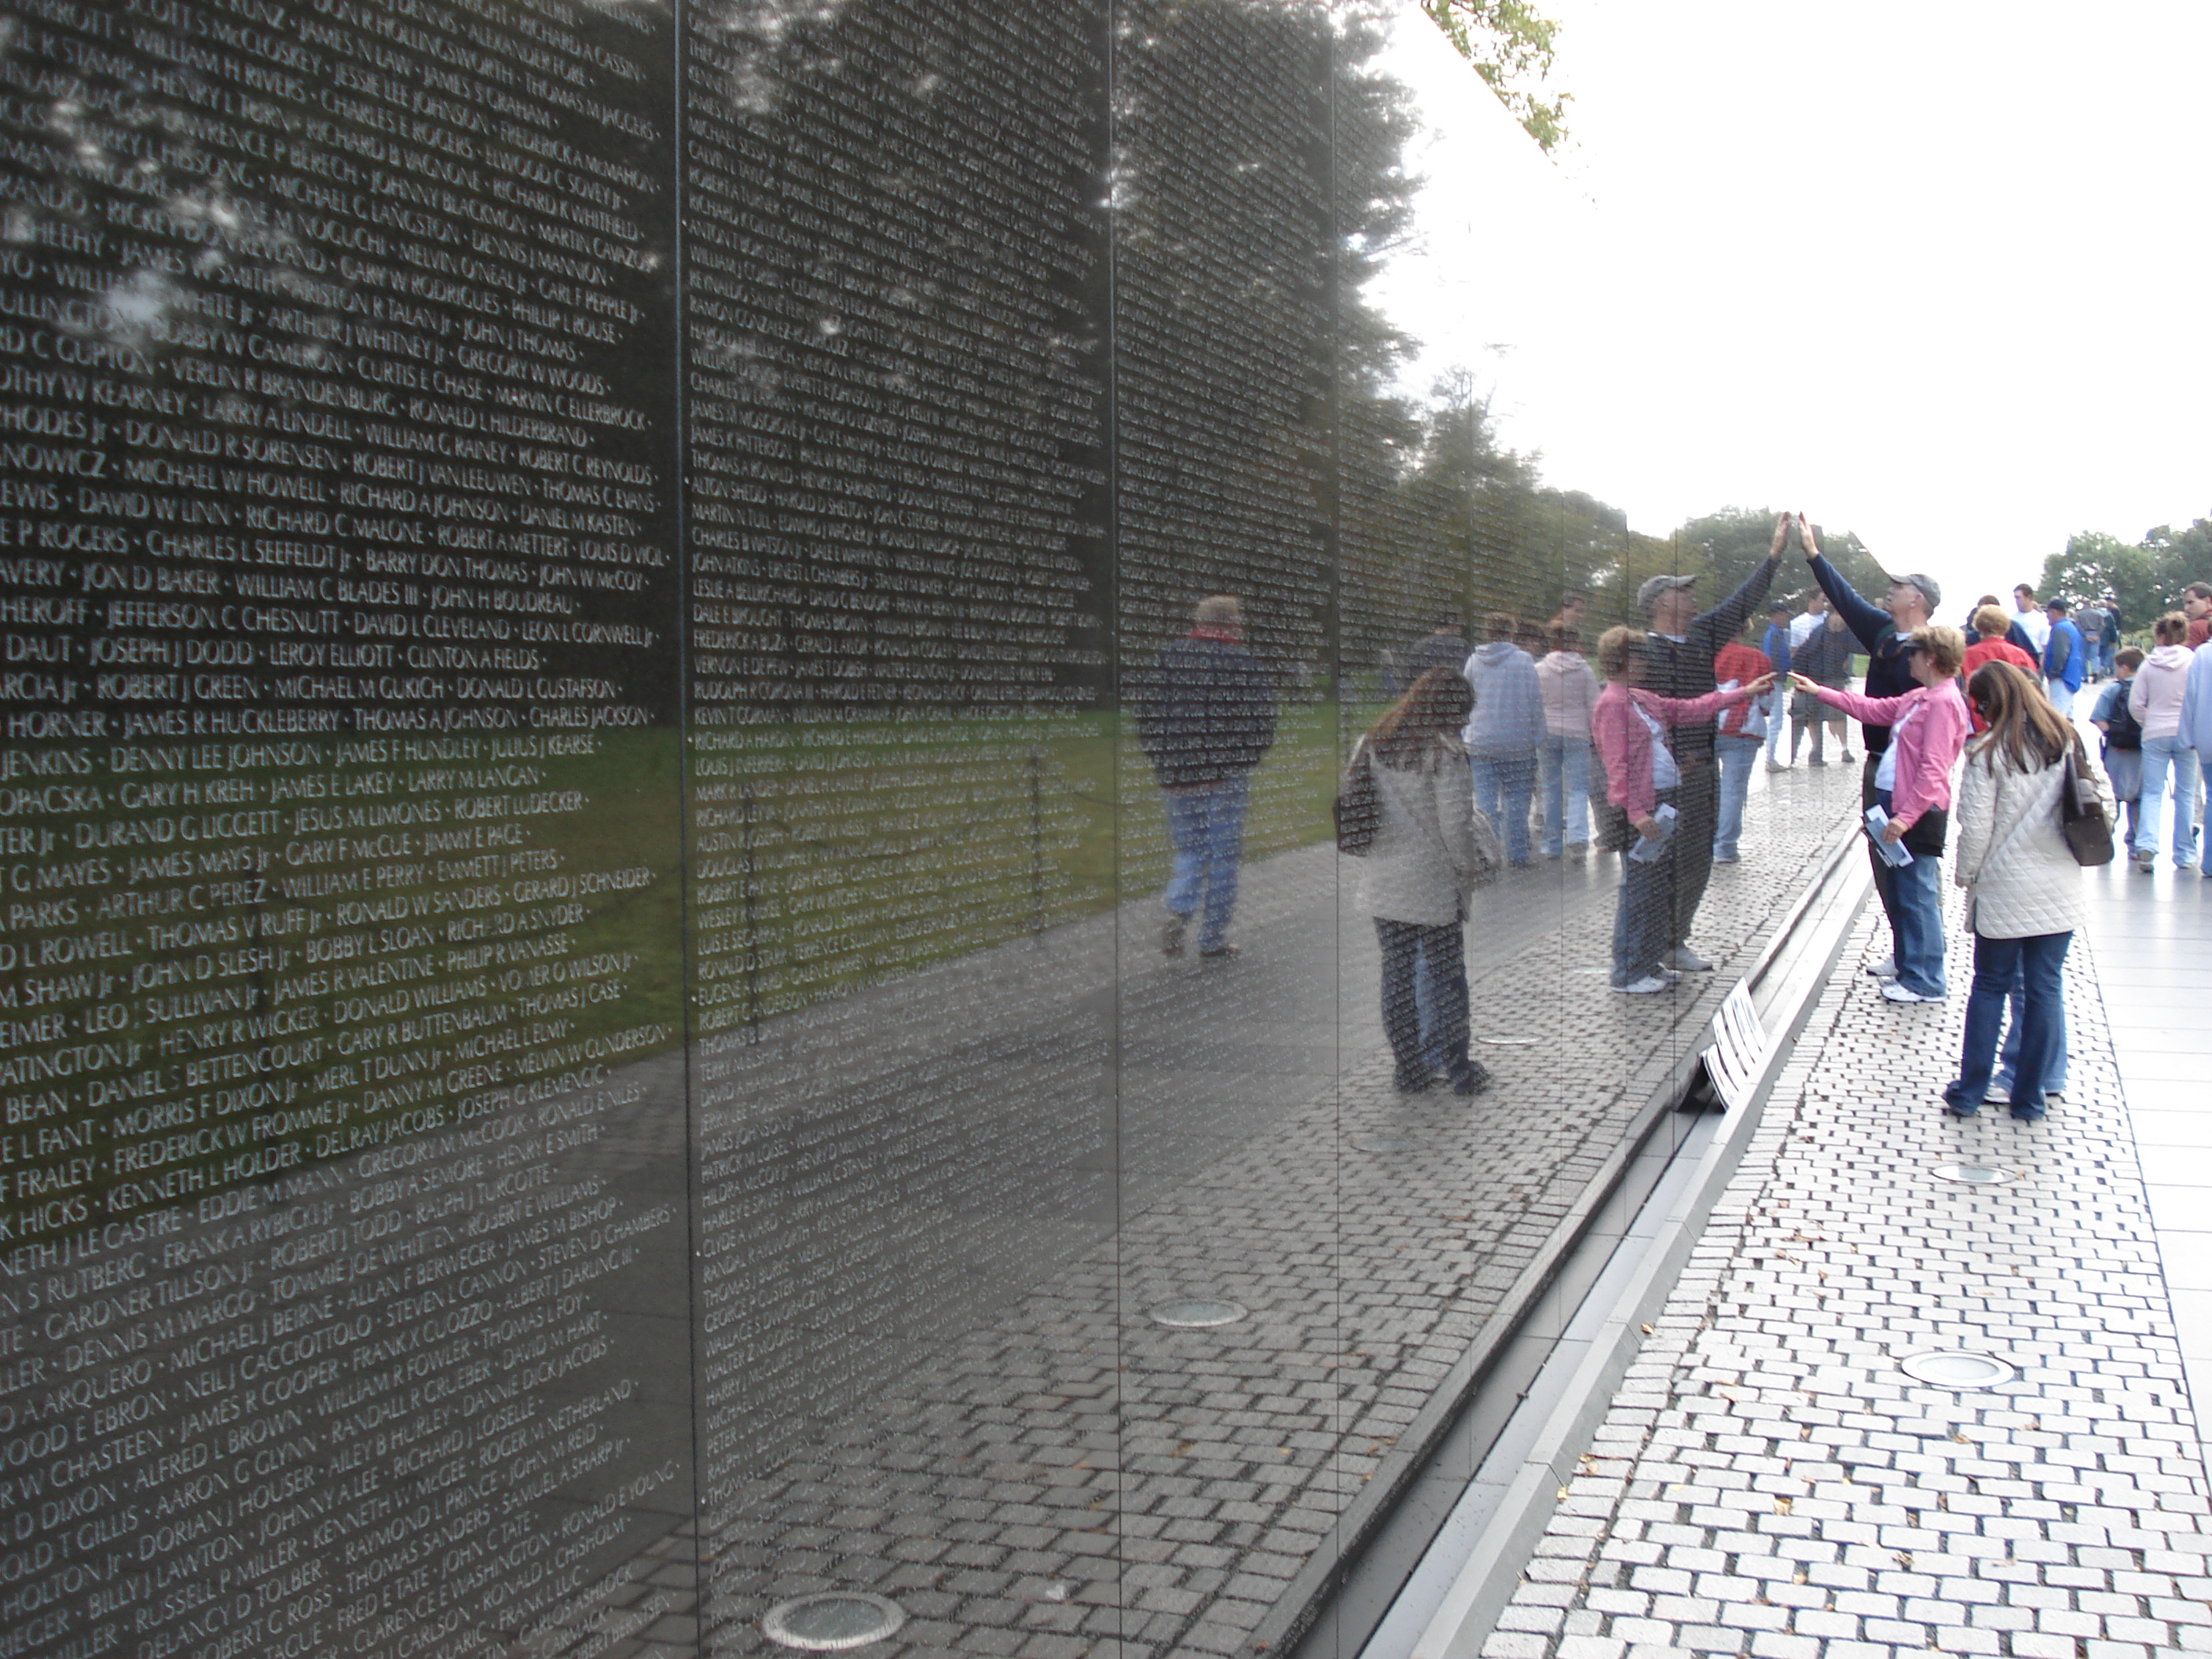 MN90: Minnesota's Vietnam Vets and the Wall of Healing